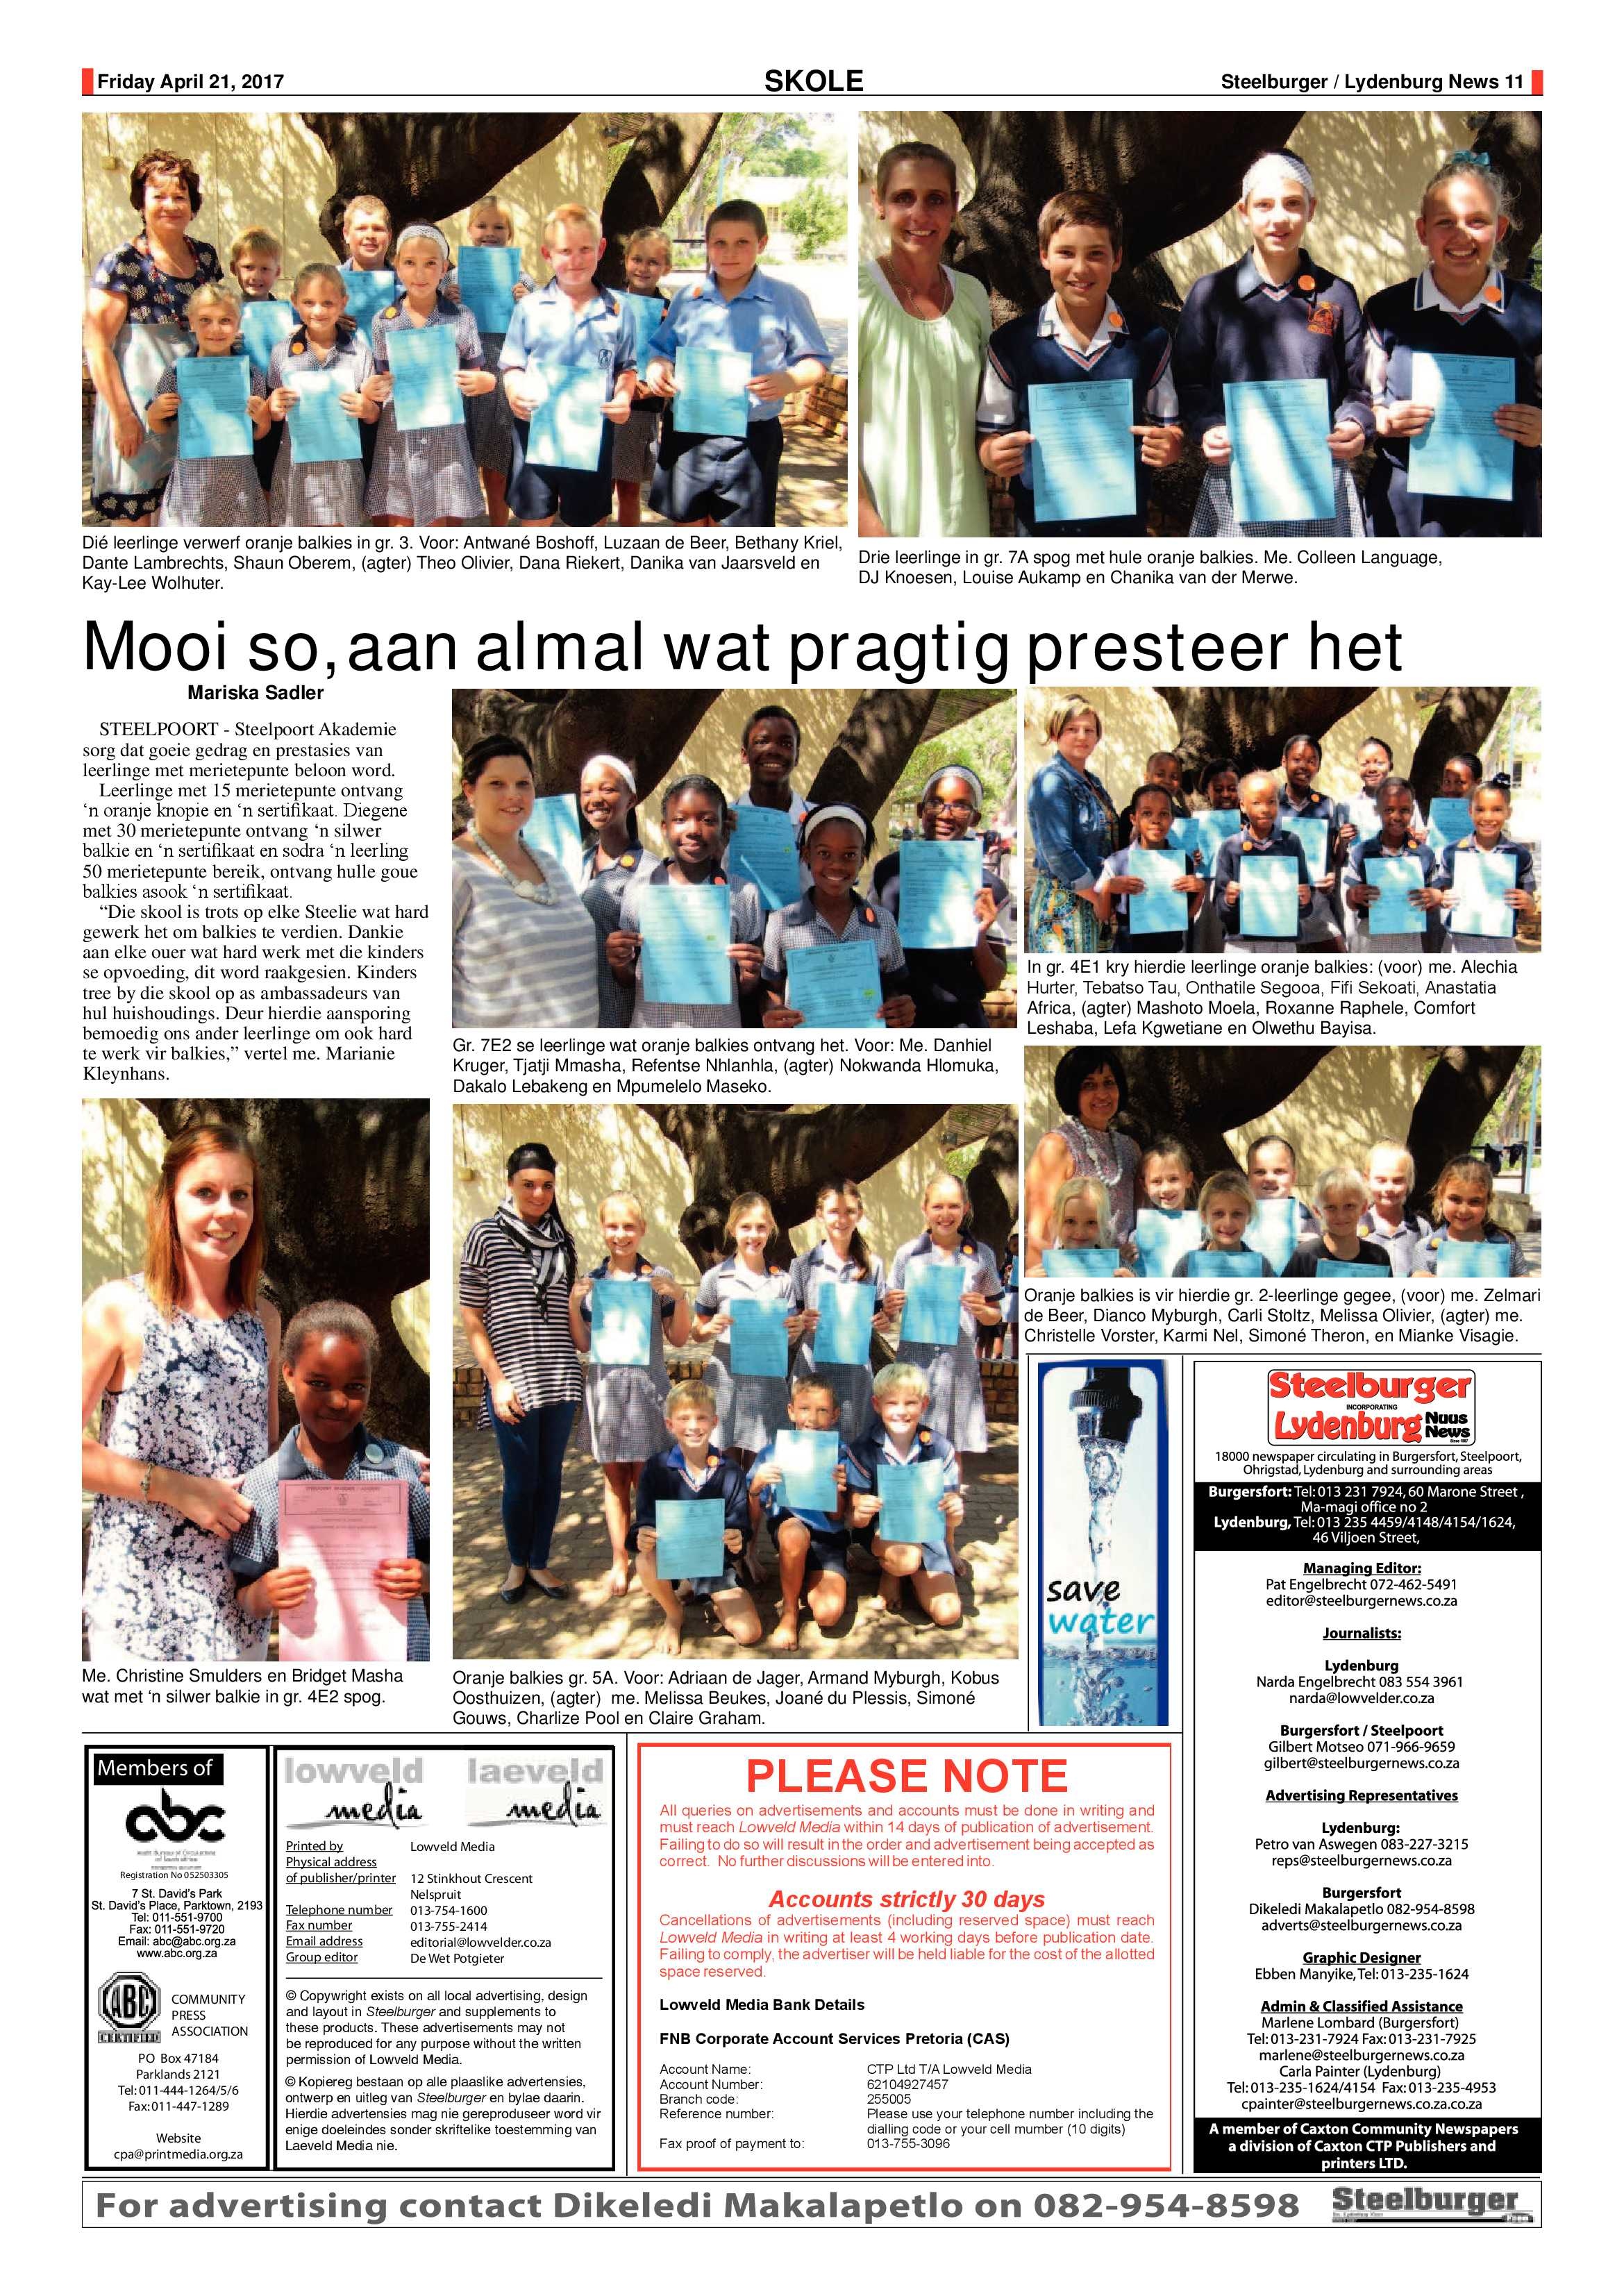 steelburger-news-21-april-2017-epapers-page-11